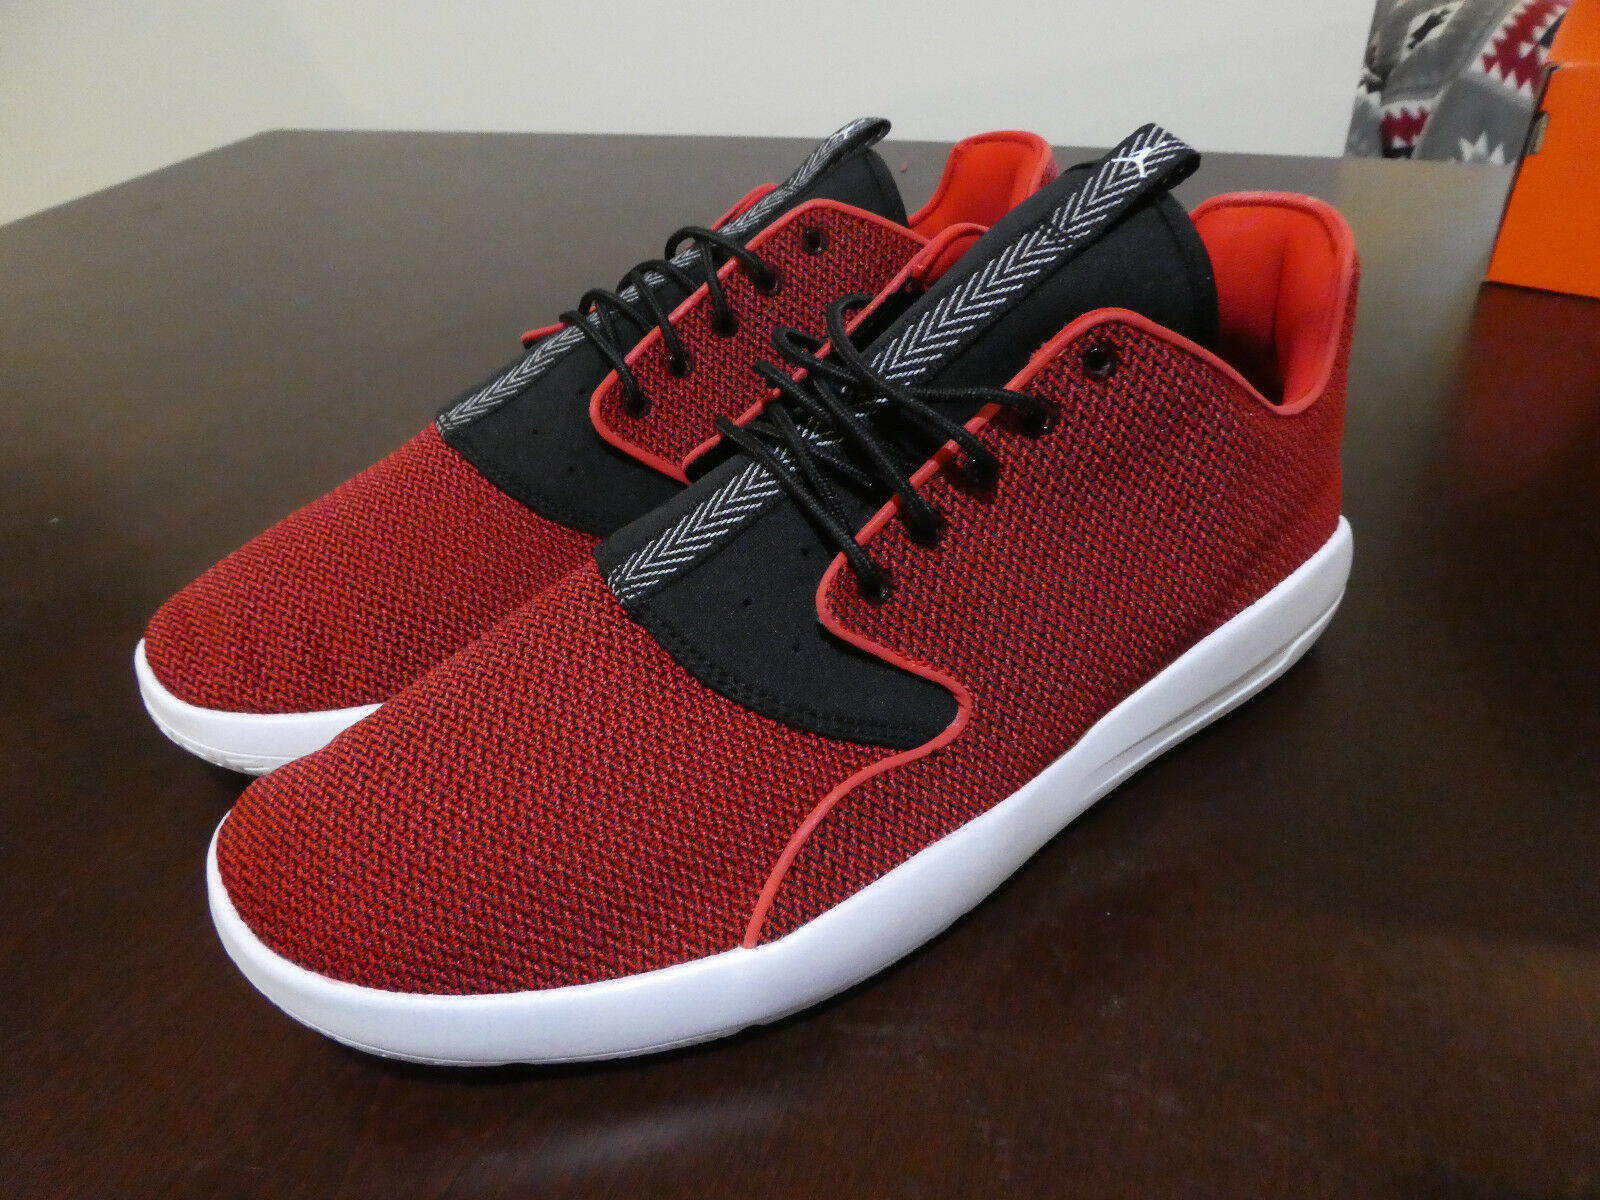 mens Jordan Eclipse shoes 724010 601 sneakers new red